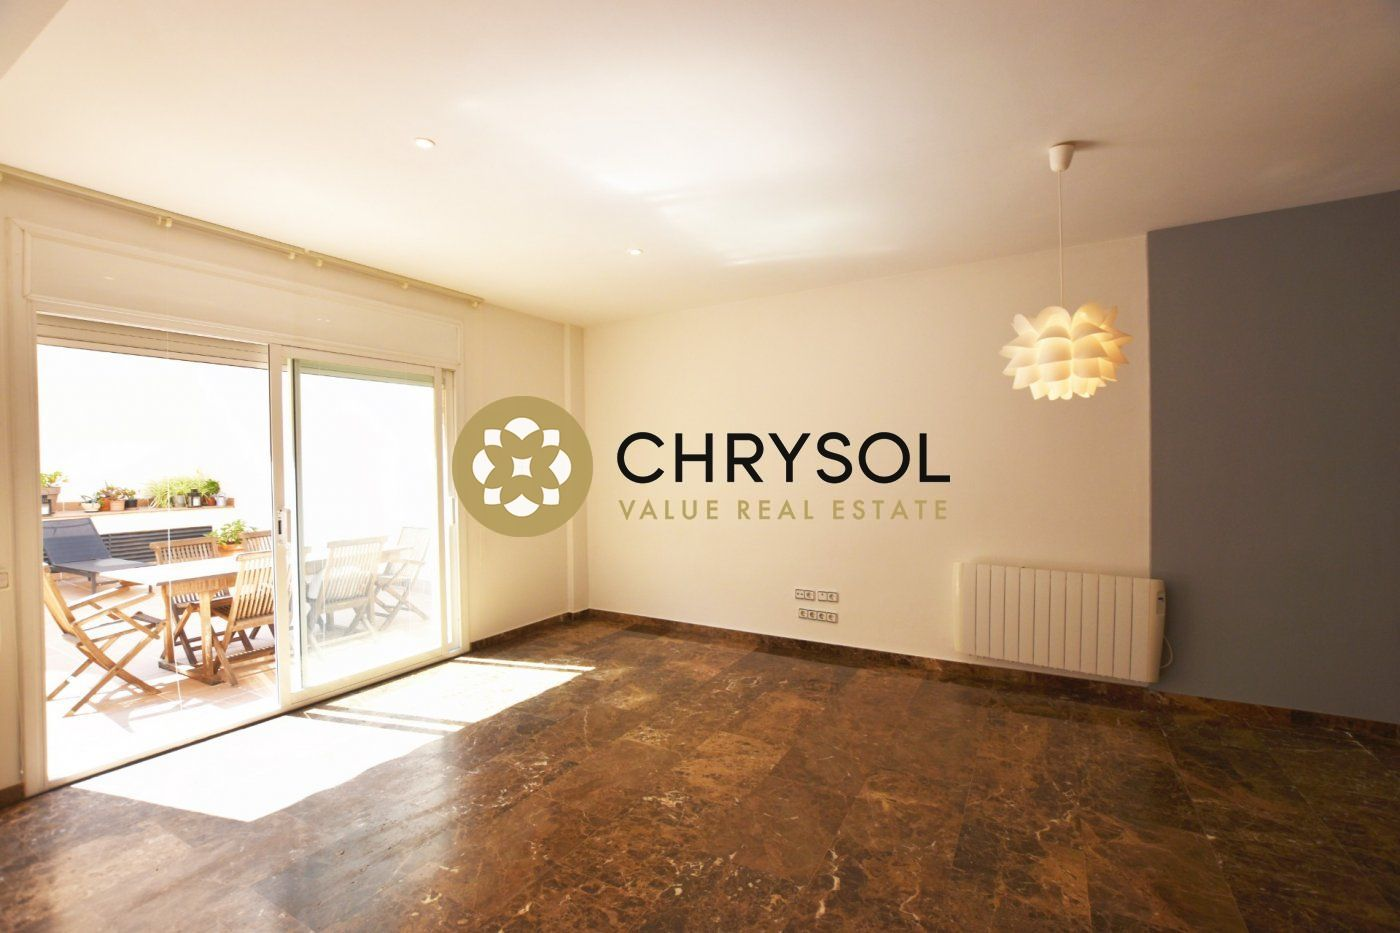 Photogallery - 39 - Chrysol Value